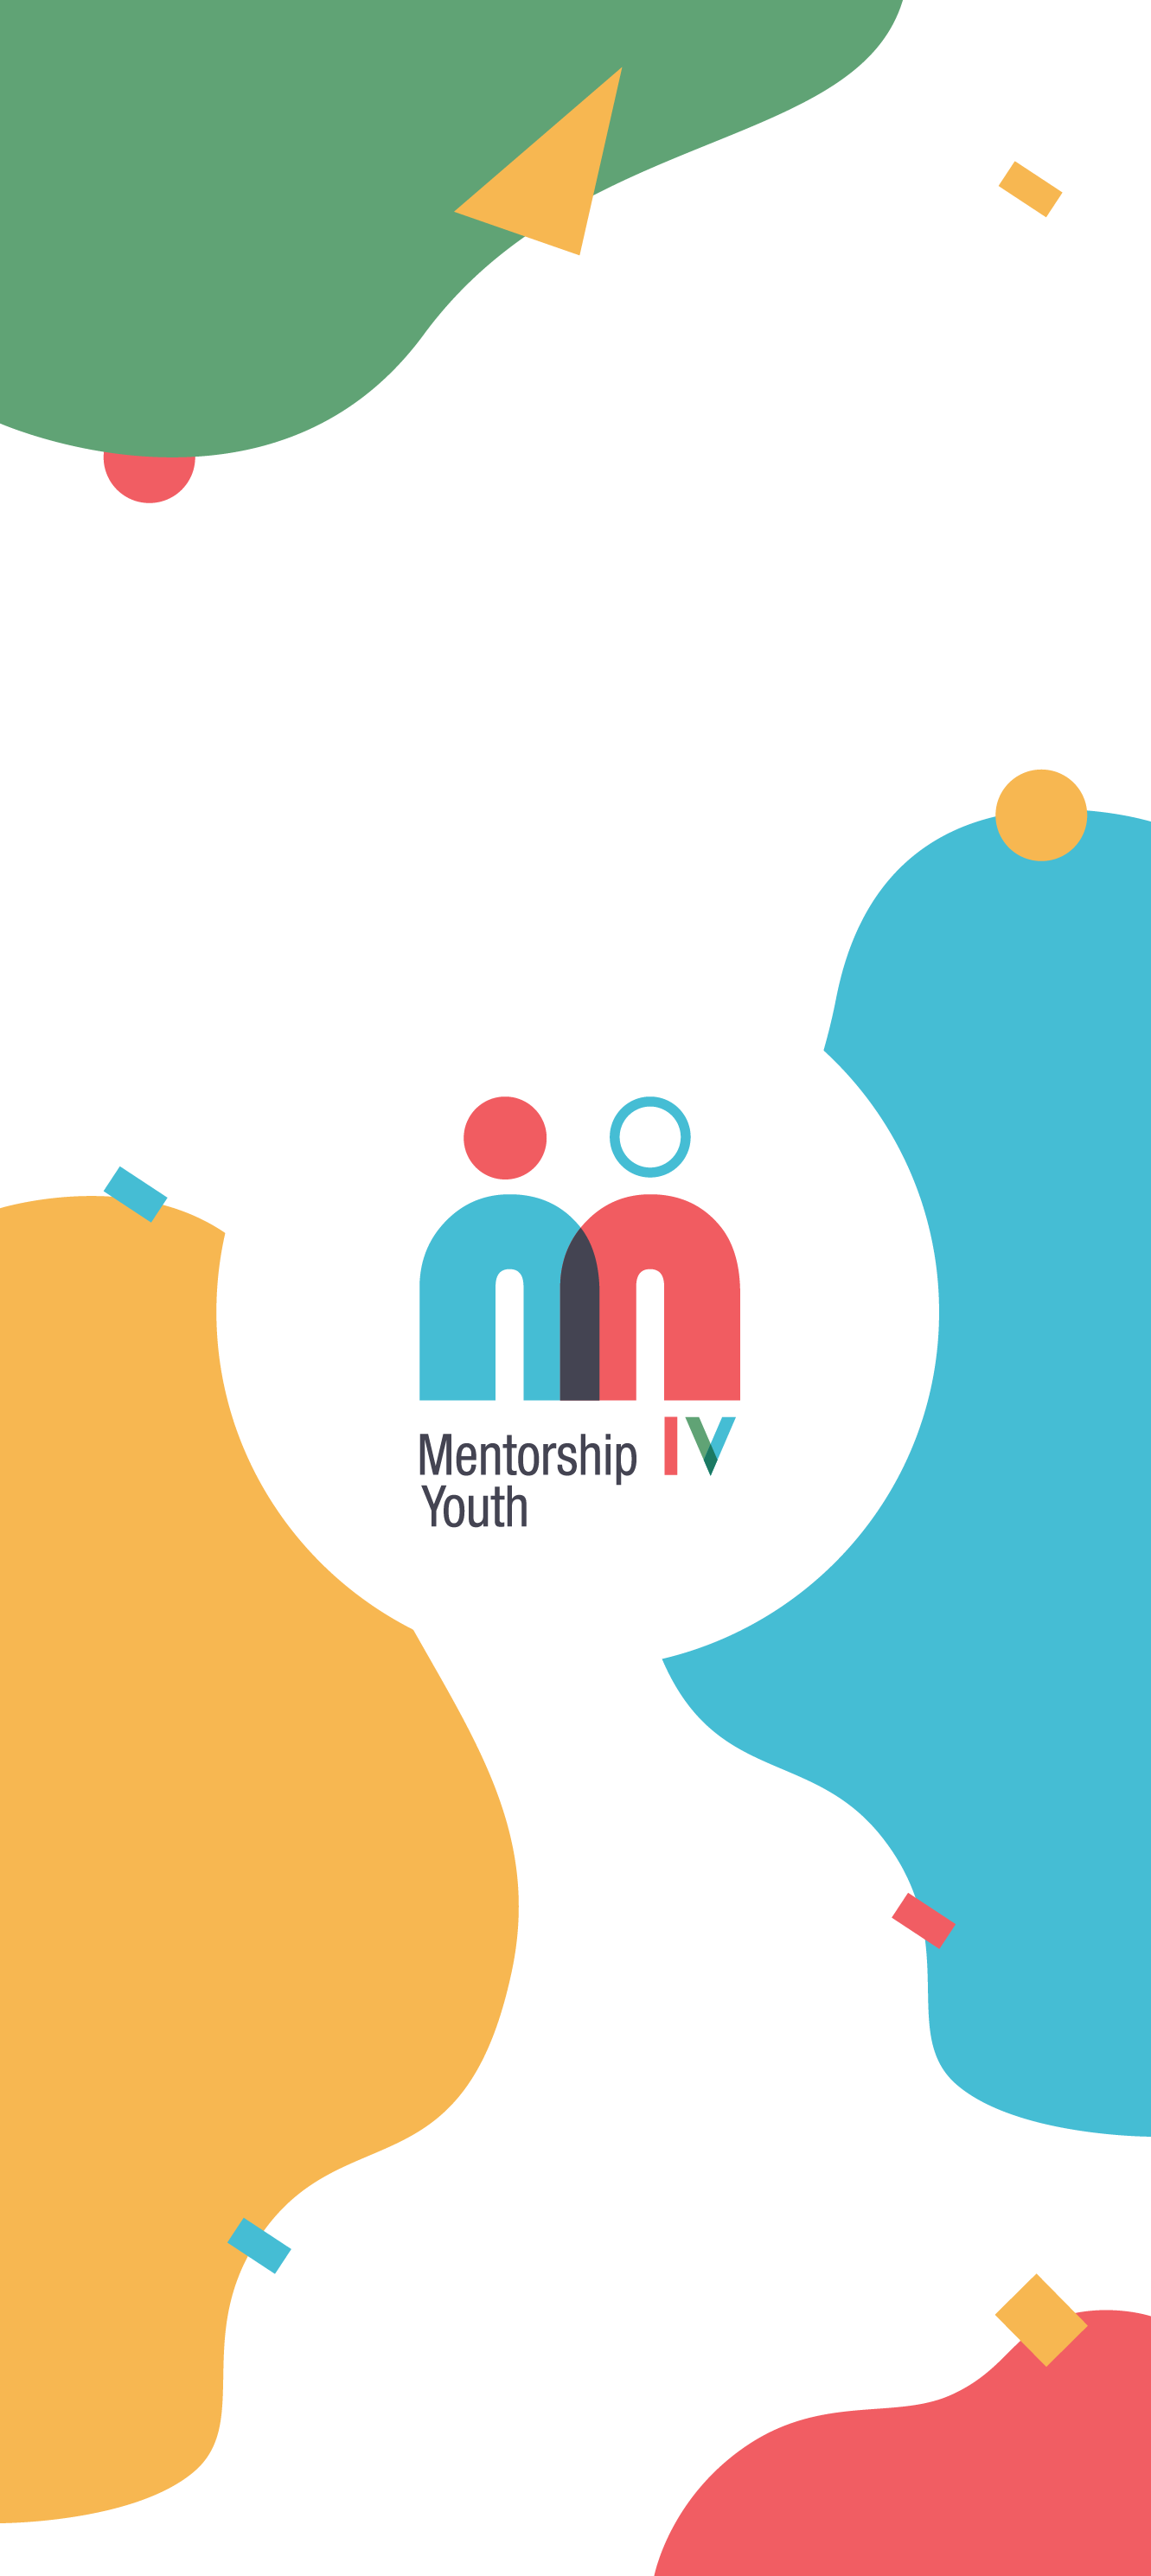 Mentorship4Youth